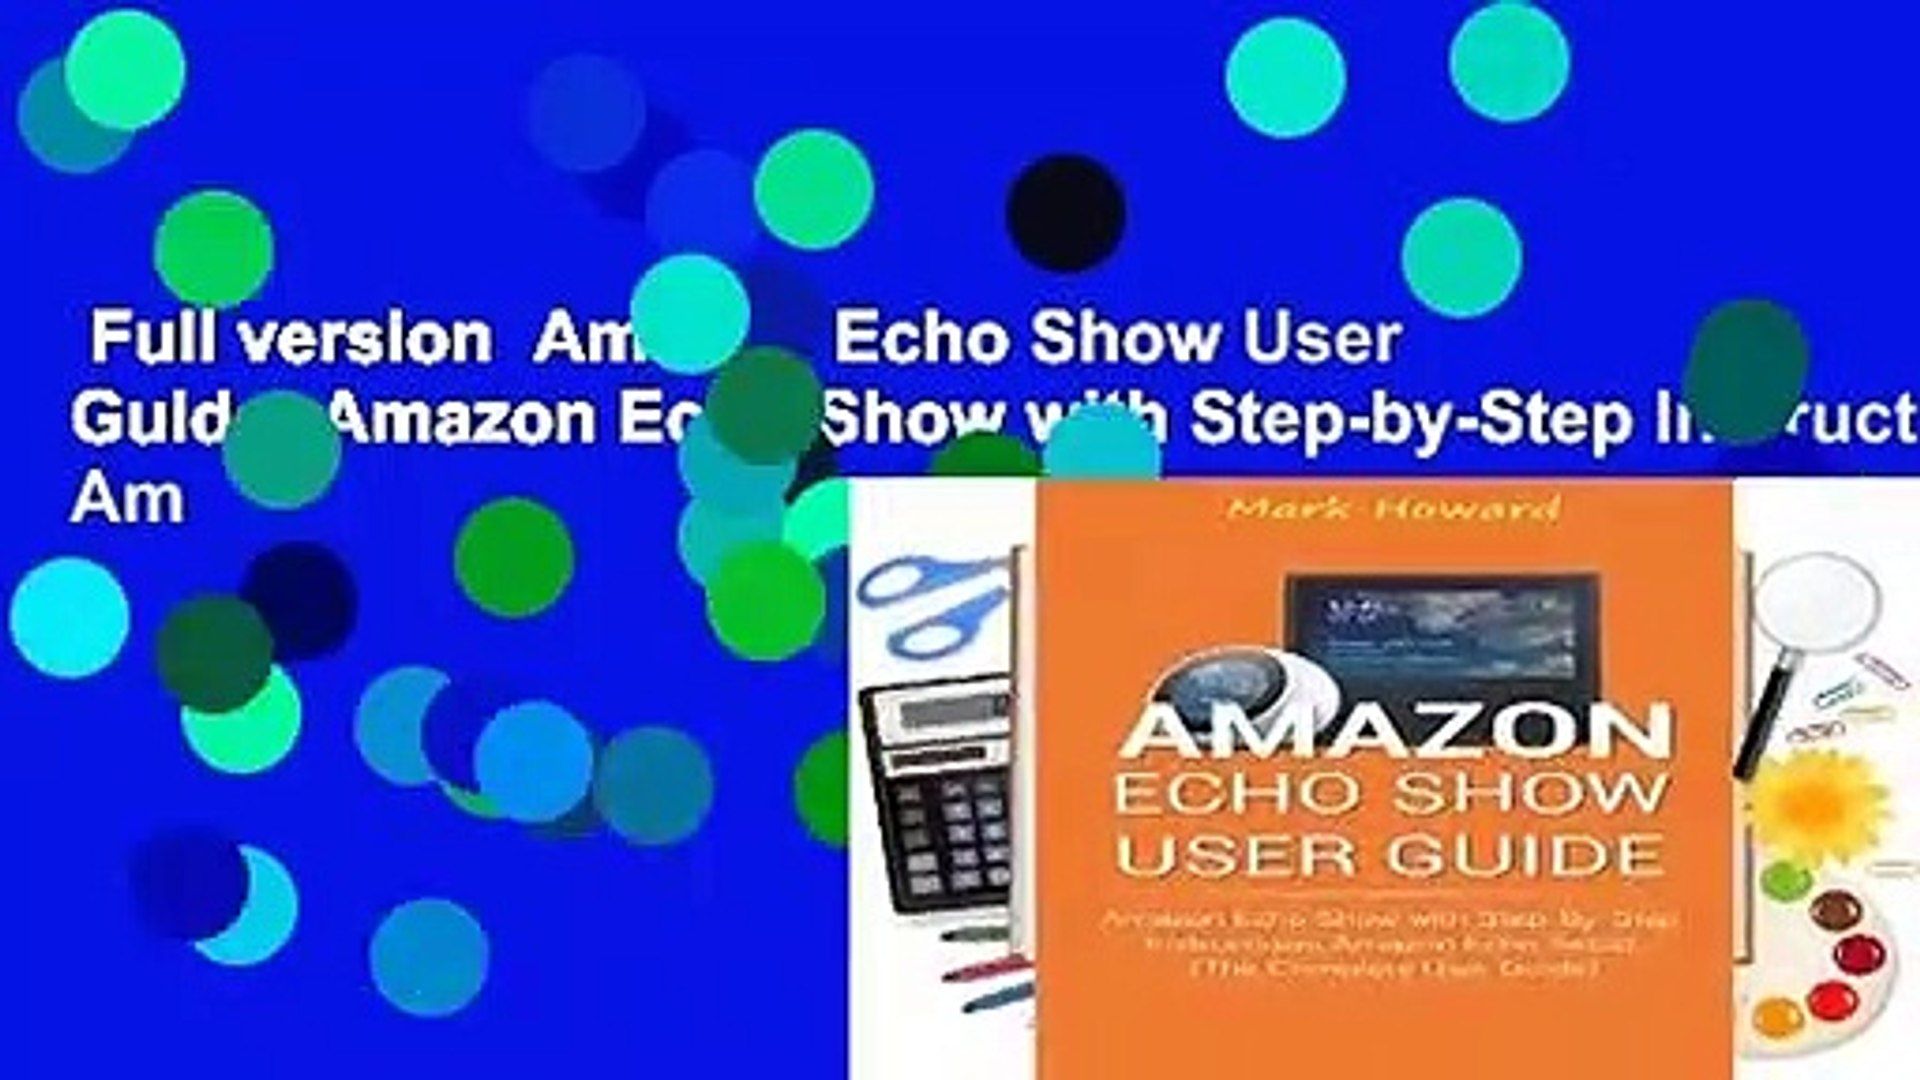 Full version  Amazon Echo Show User Guide: Amazon Echo Show with Step-by-Step Instructions, Am